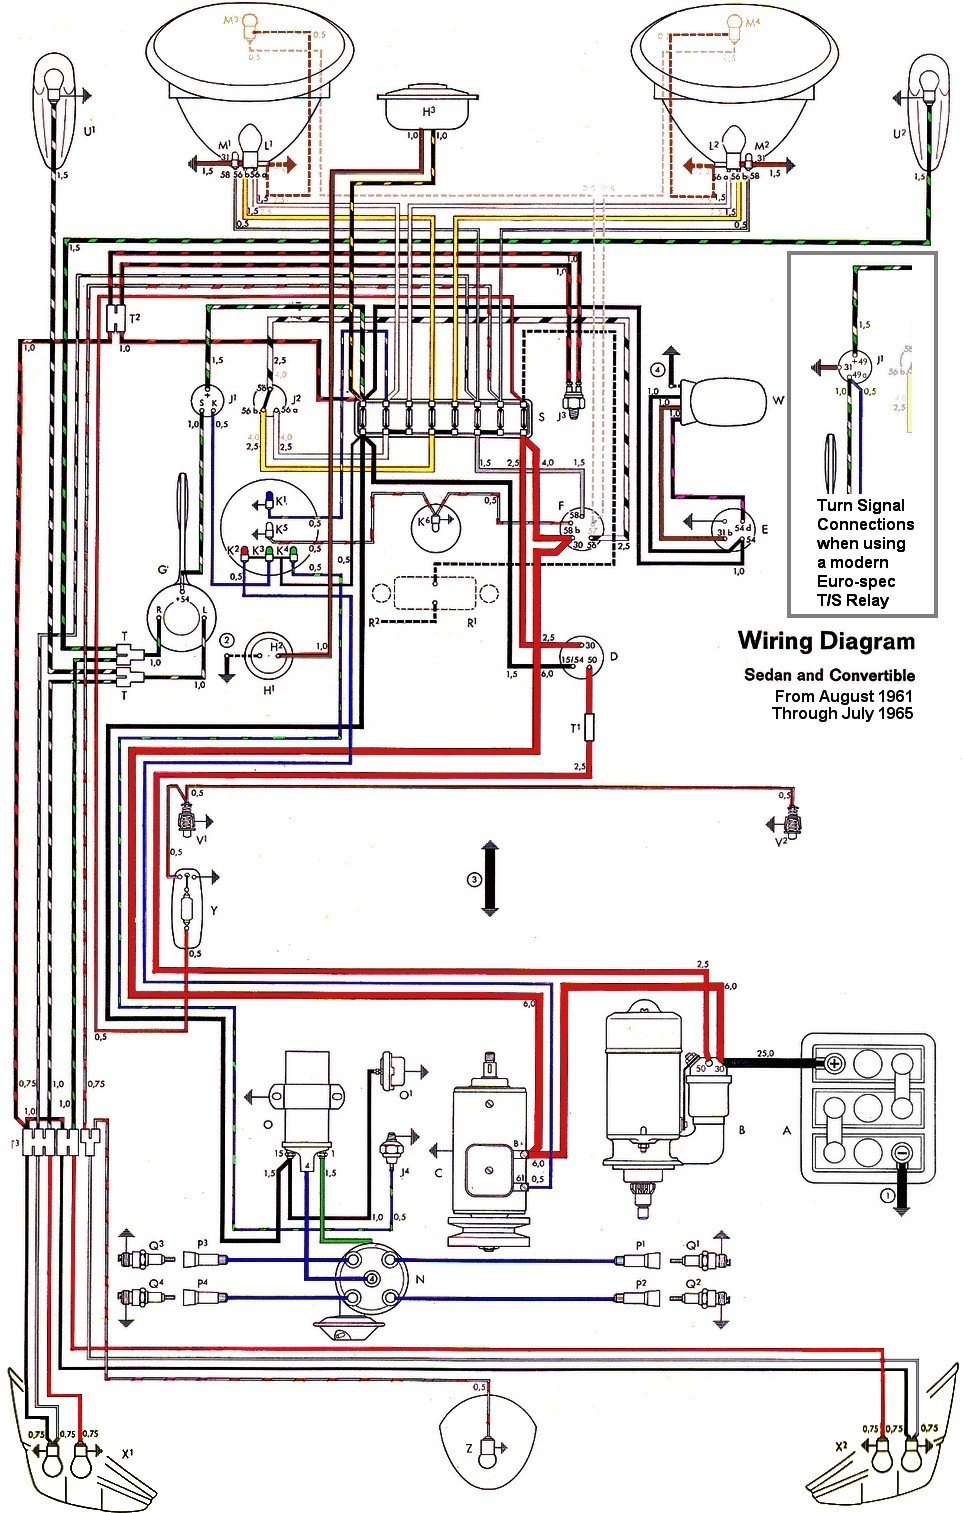 bug_62 65withinset wiring diagram vw beetle sedan and convertible 1961 1965 vw 1978 vw super beetle wiring diagram at soozxer.org